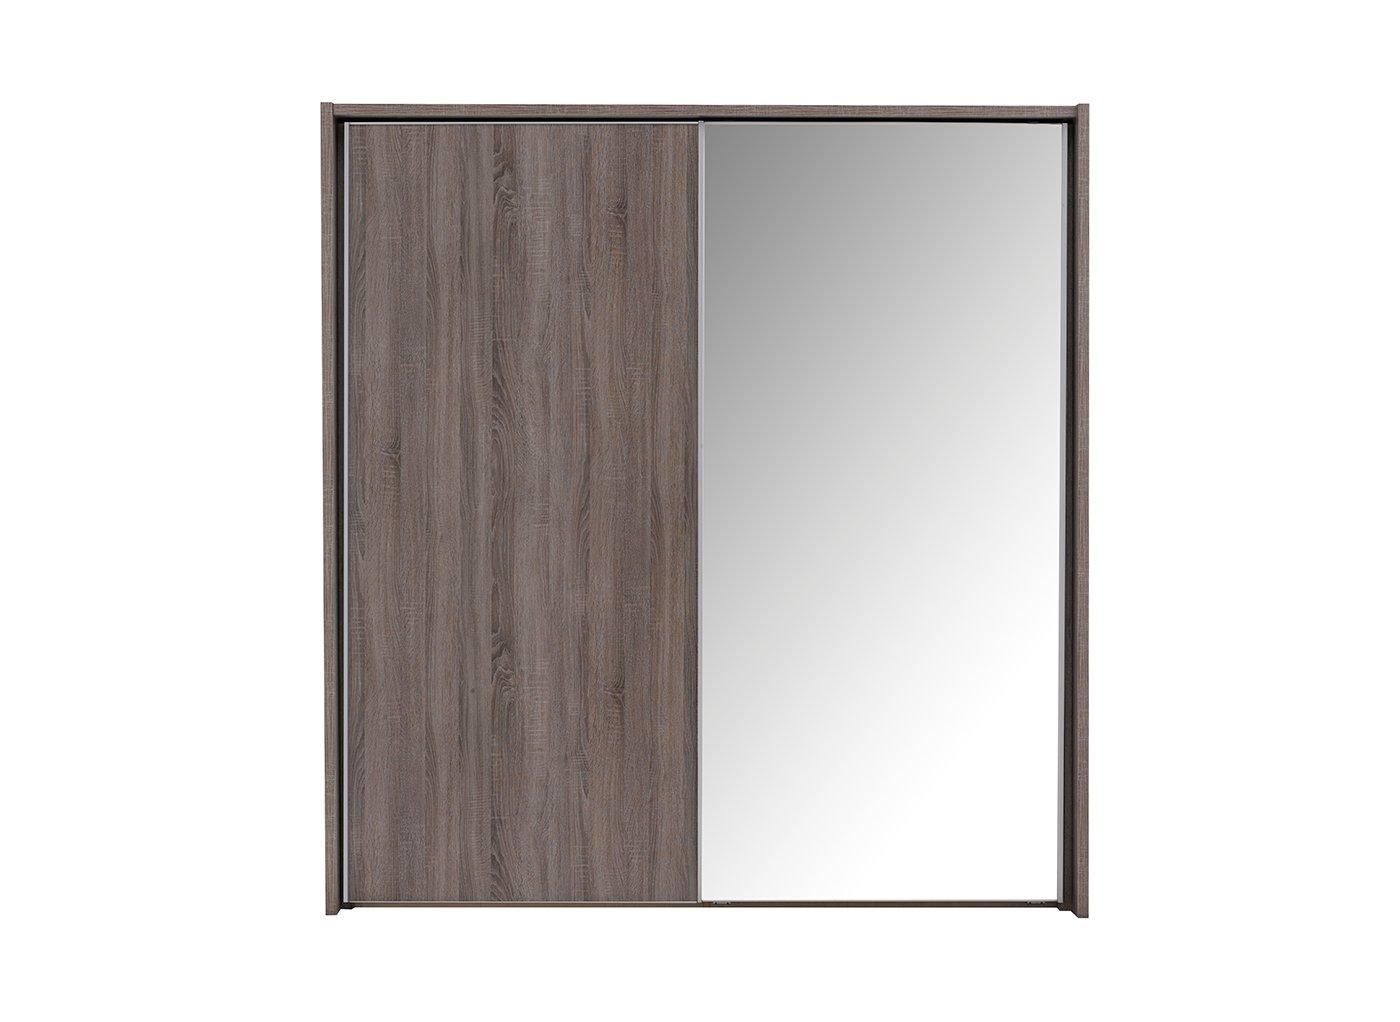 Melbourne 2 Mirror Door Sliding Wardrobe – Oak – Medium (£899)